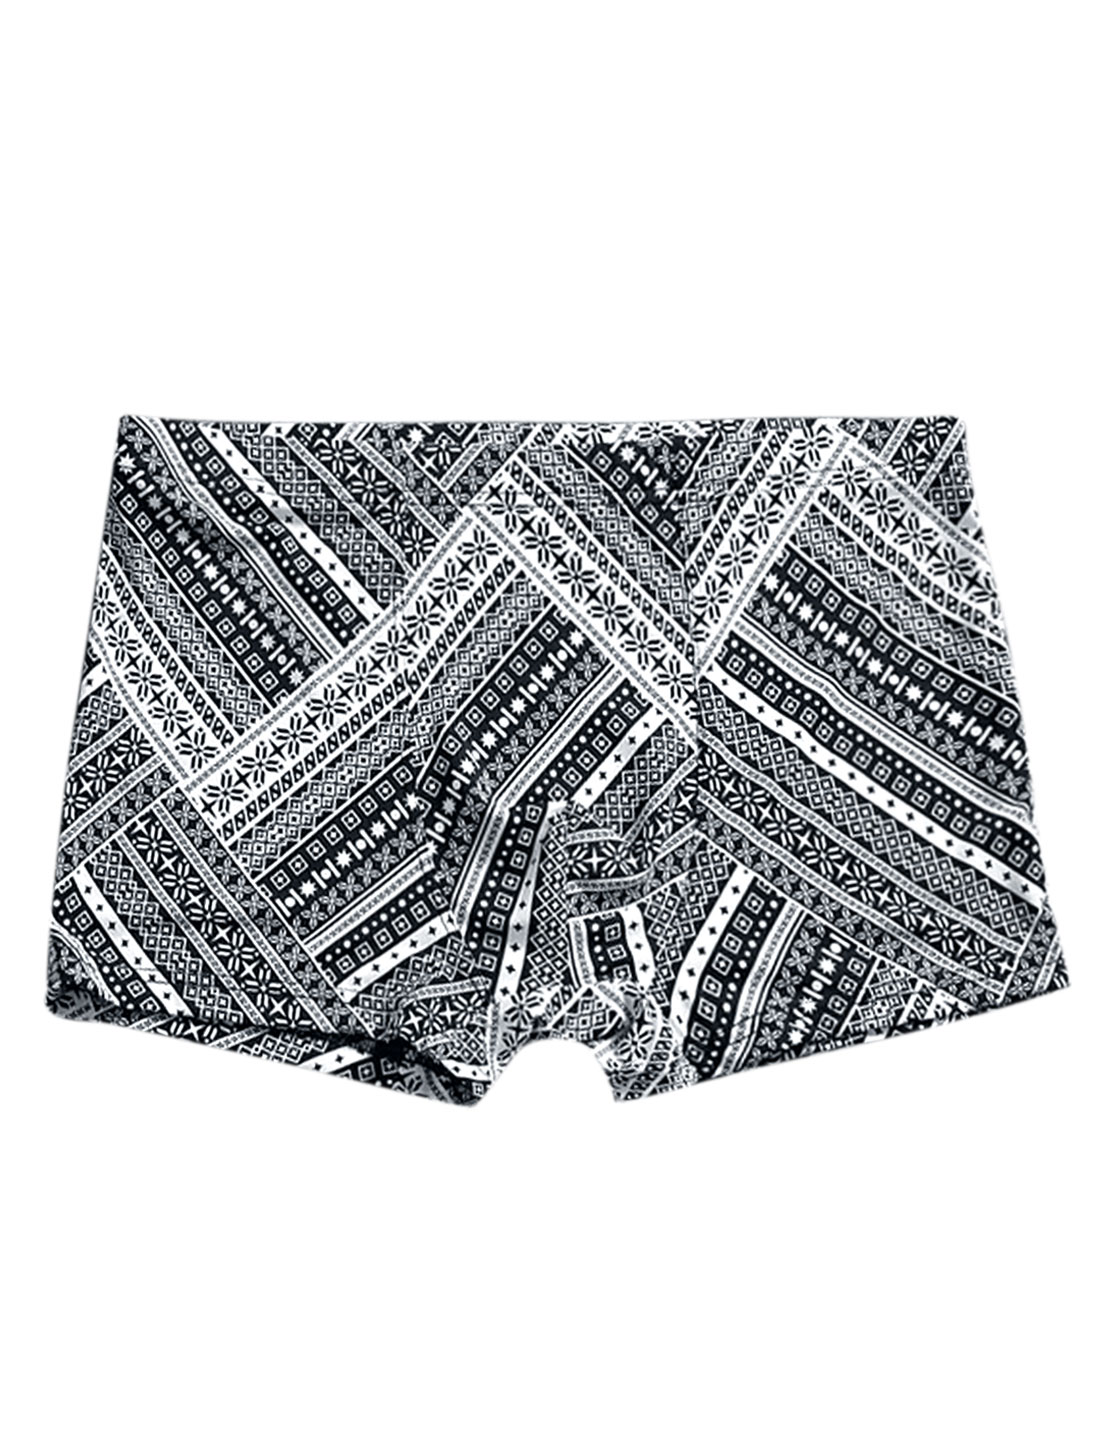 Men Geometric Print Elastic Waist Stretchy Boxer Brief Black White W30